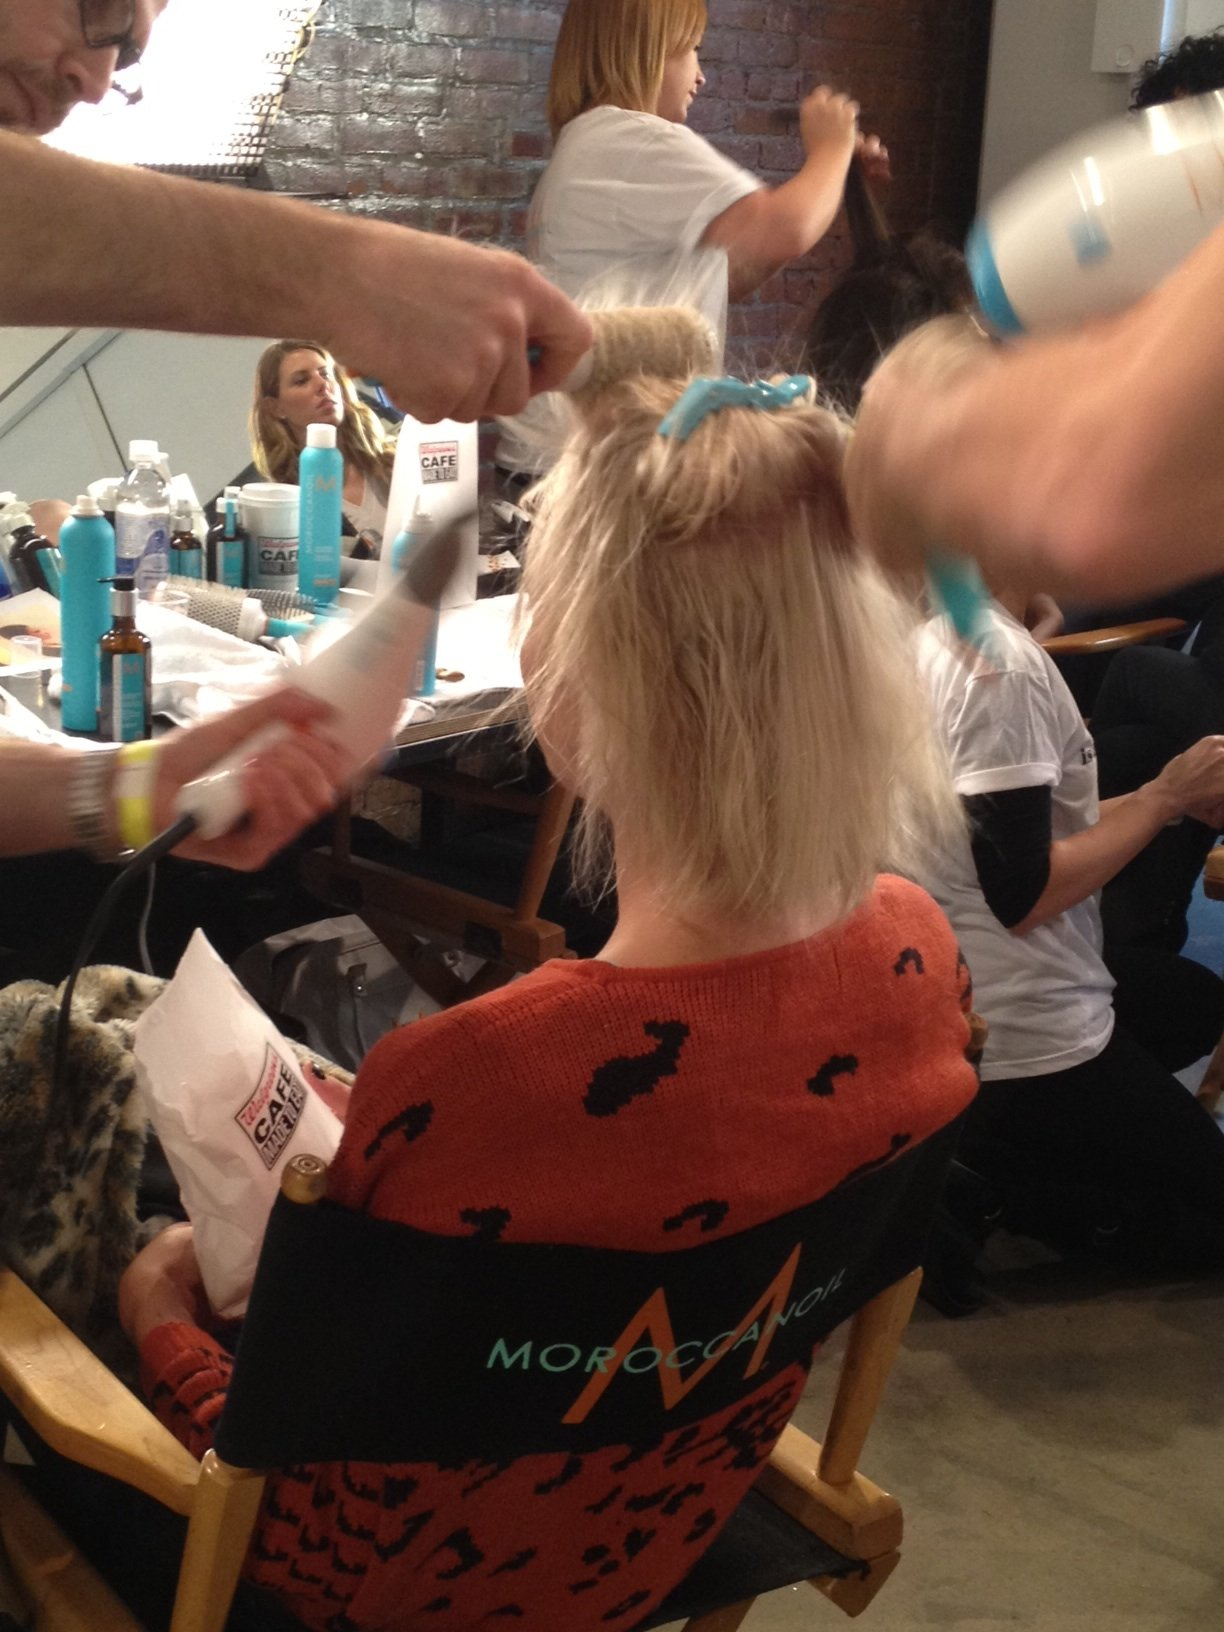 Stylists blow-drying to create volume.